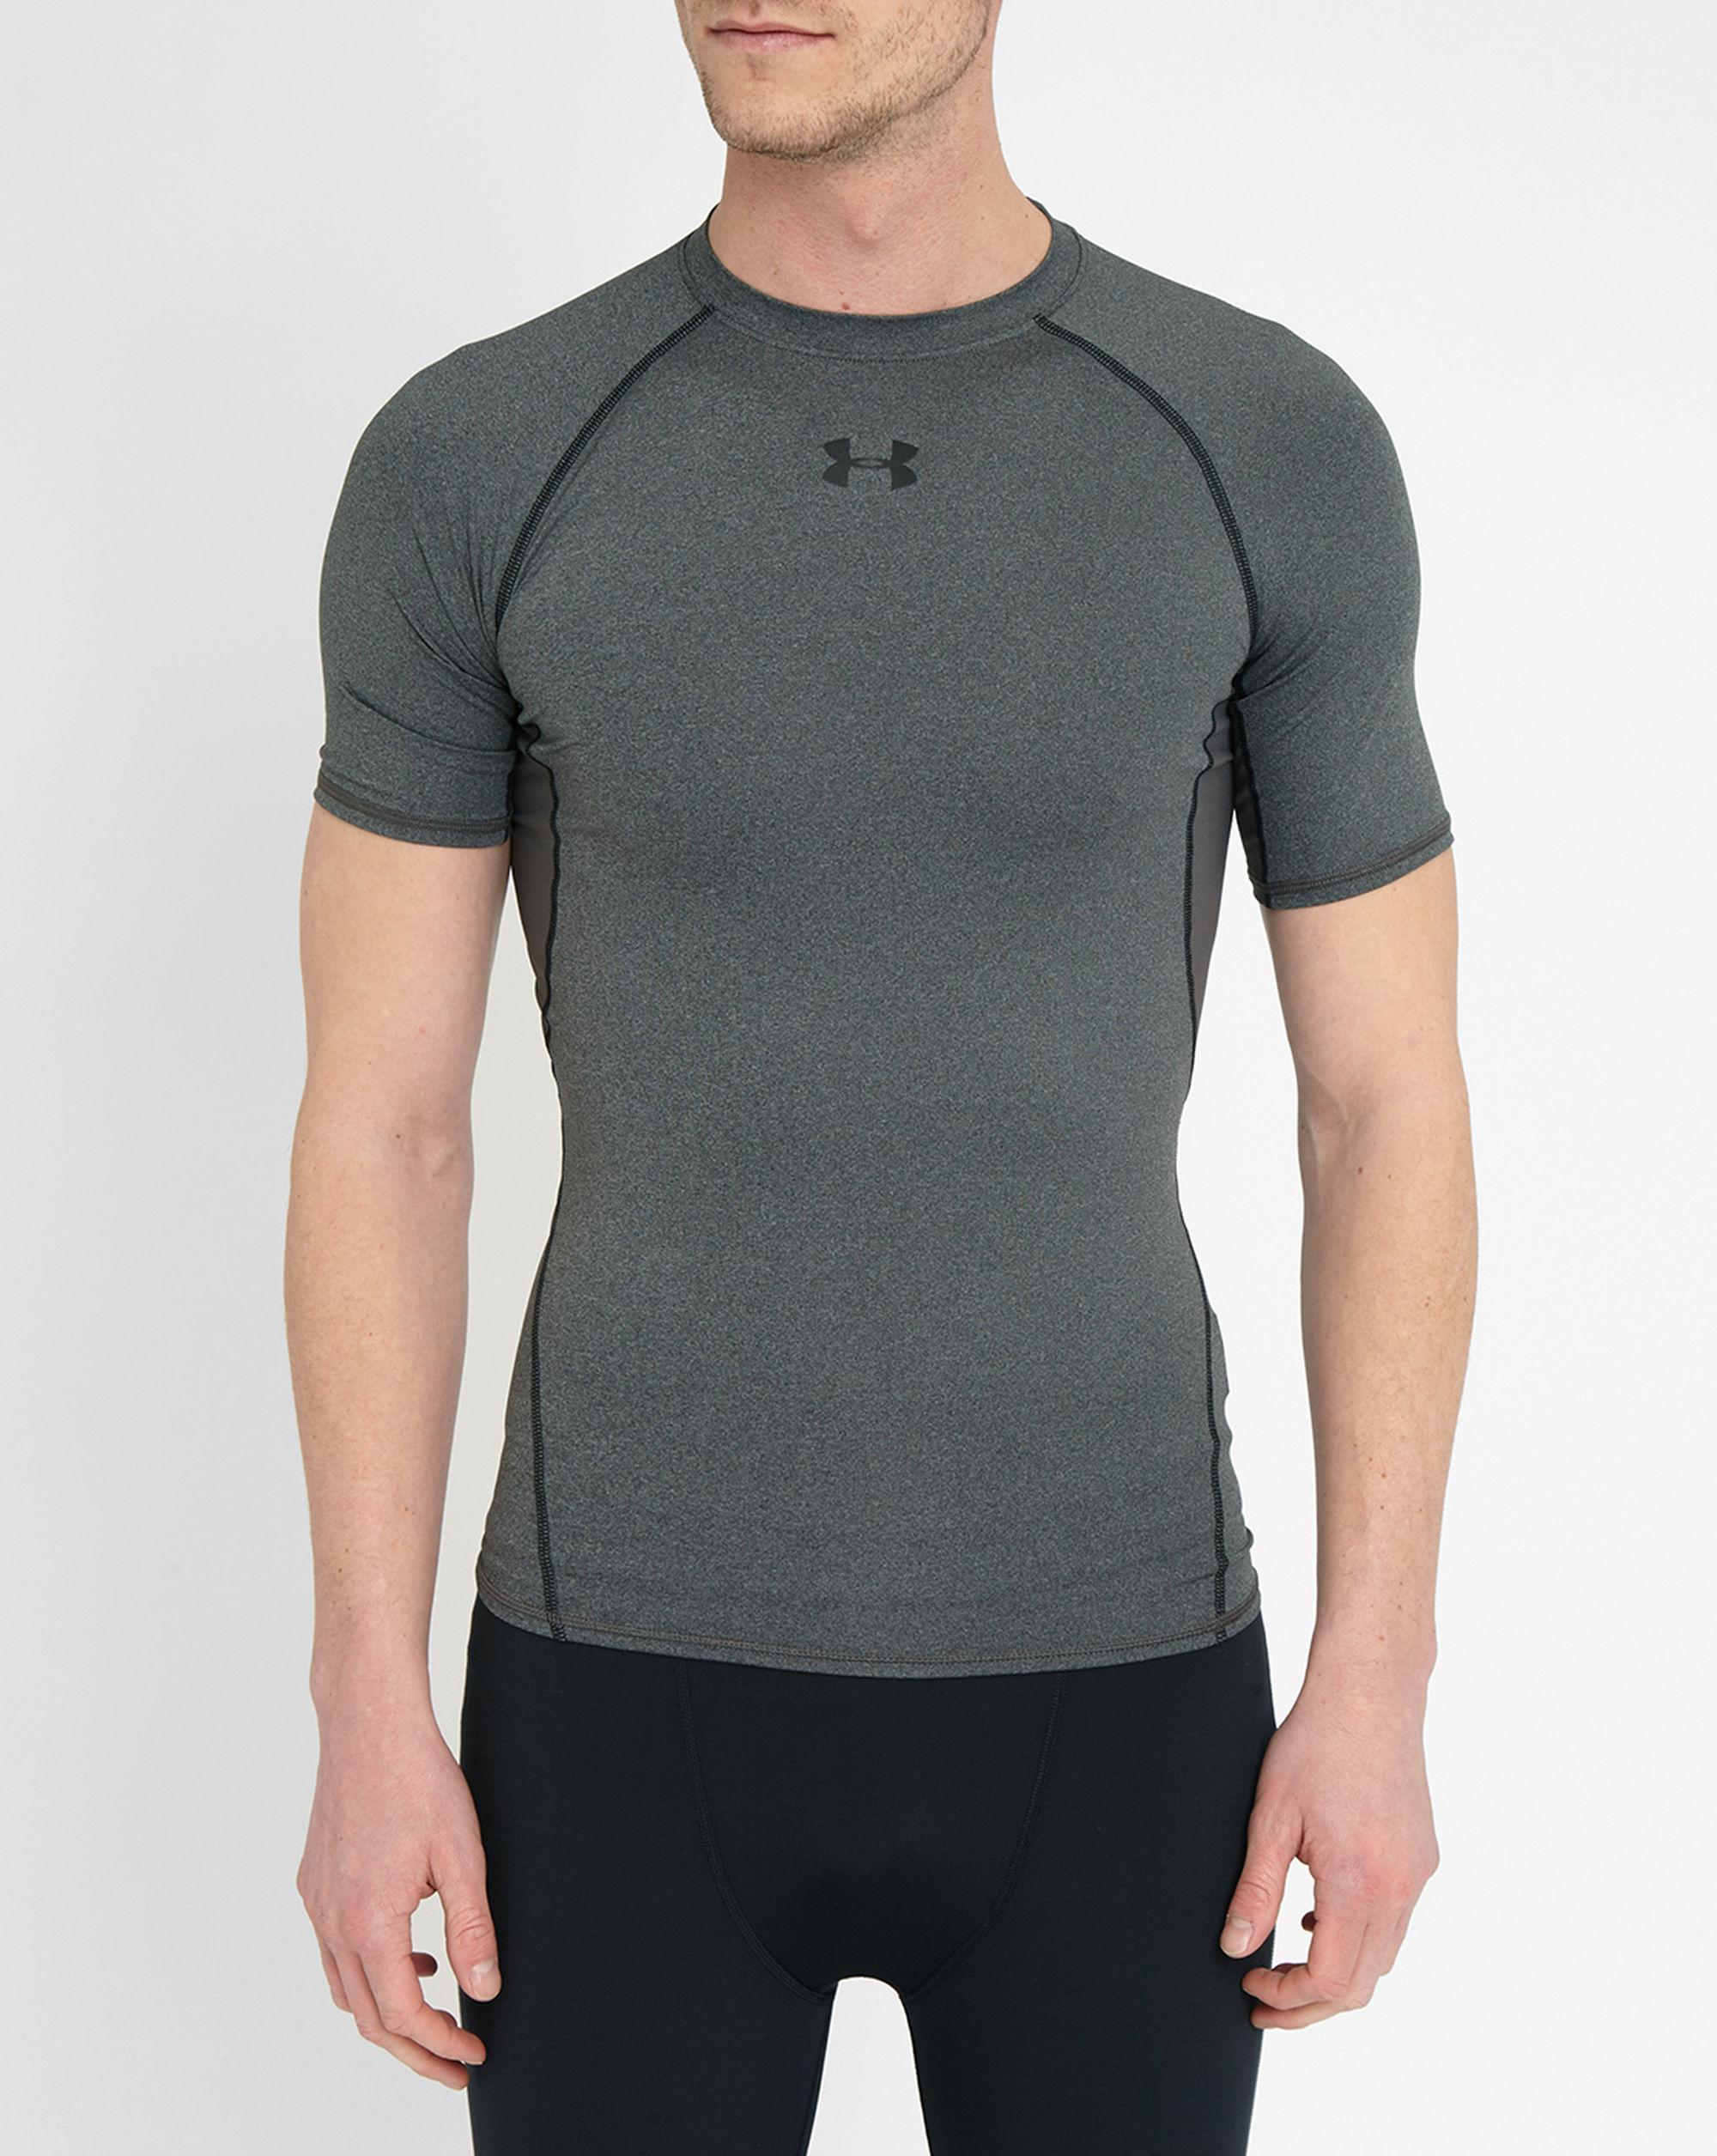 Under Armour Grey Heatgear Compression T Shirt In Gray For